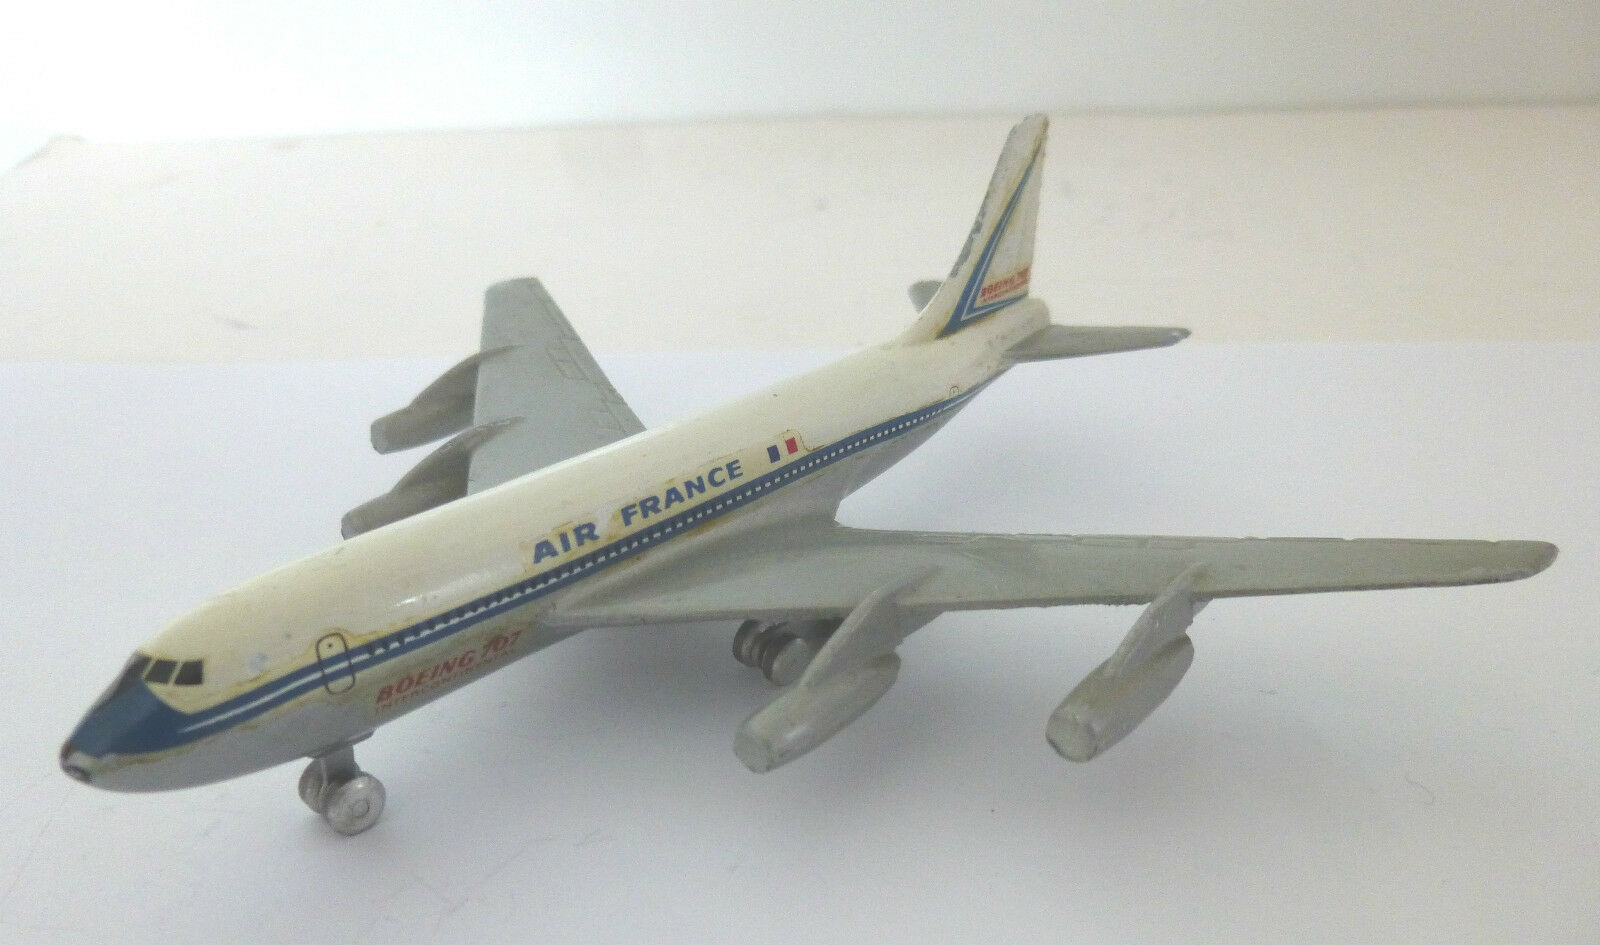 CIJ Diecast Air France Boeing 707 Aircraft Model  French Diecast Aircraft Model